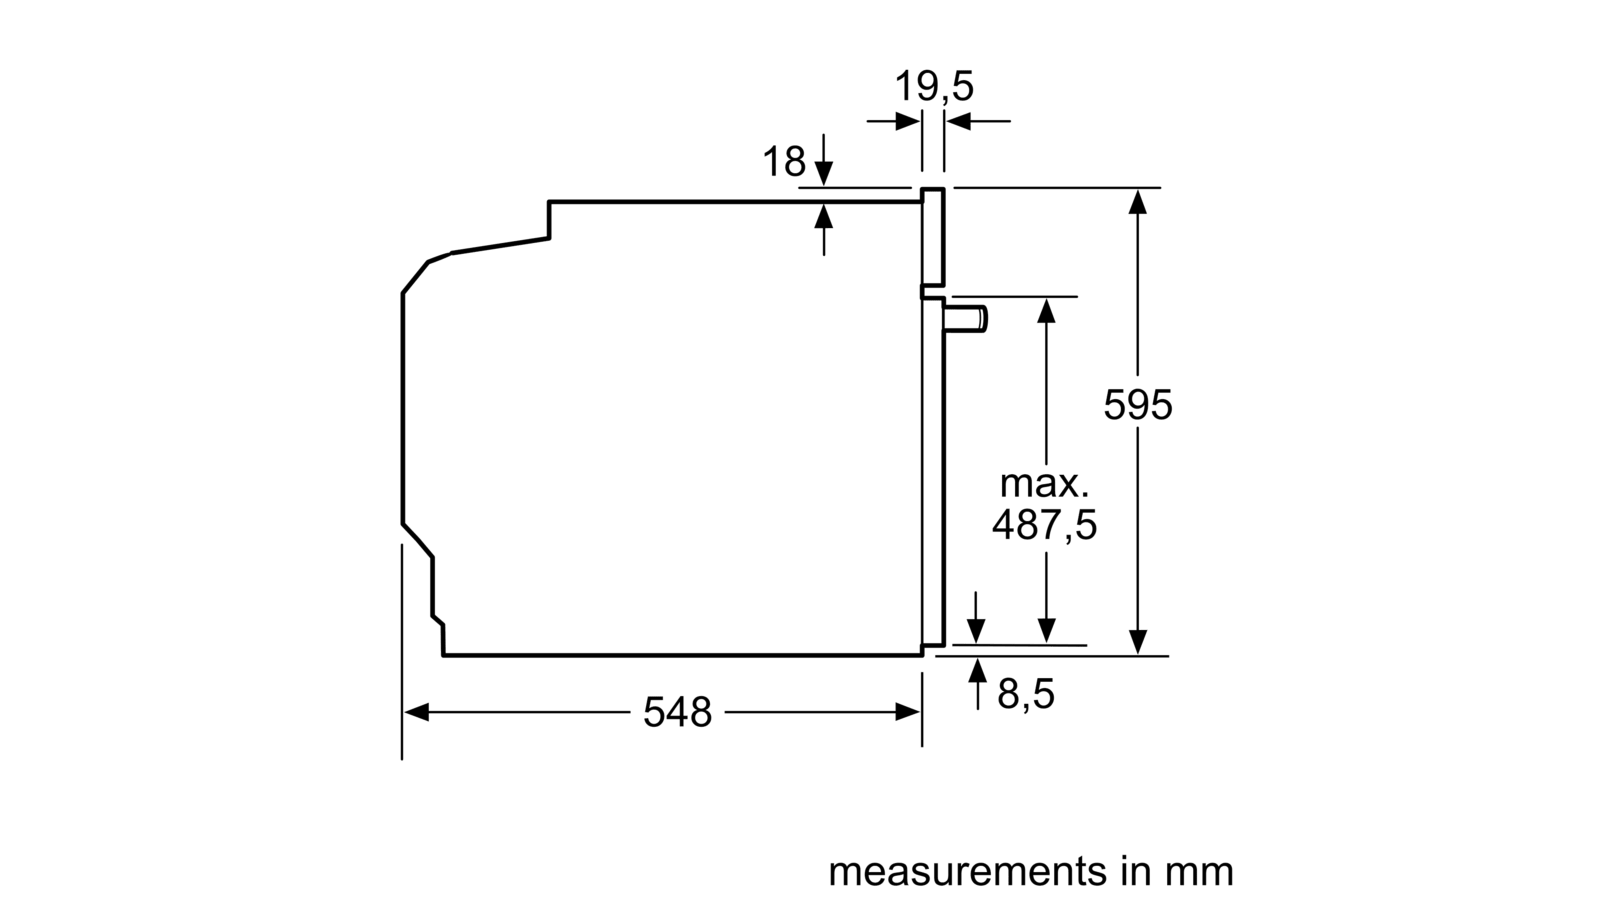 Color Black Stainless White Volts 115 115 115 Wiring Diagram